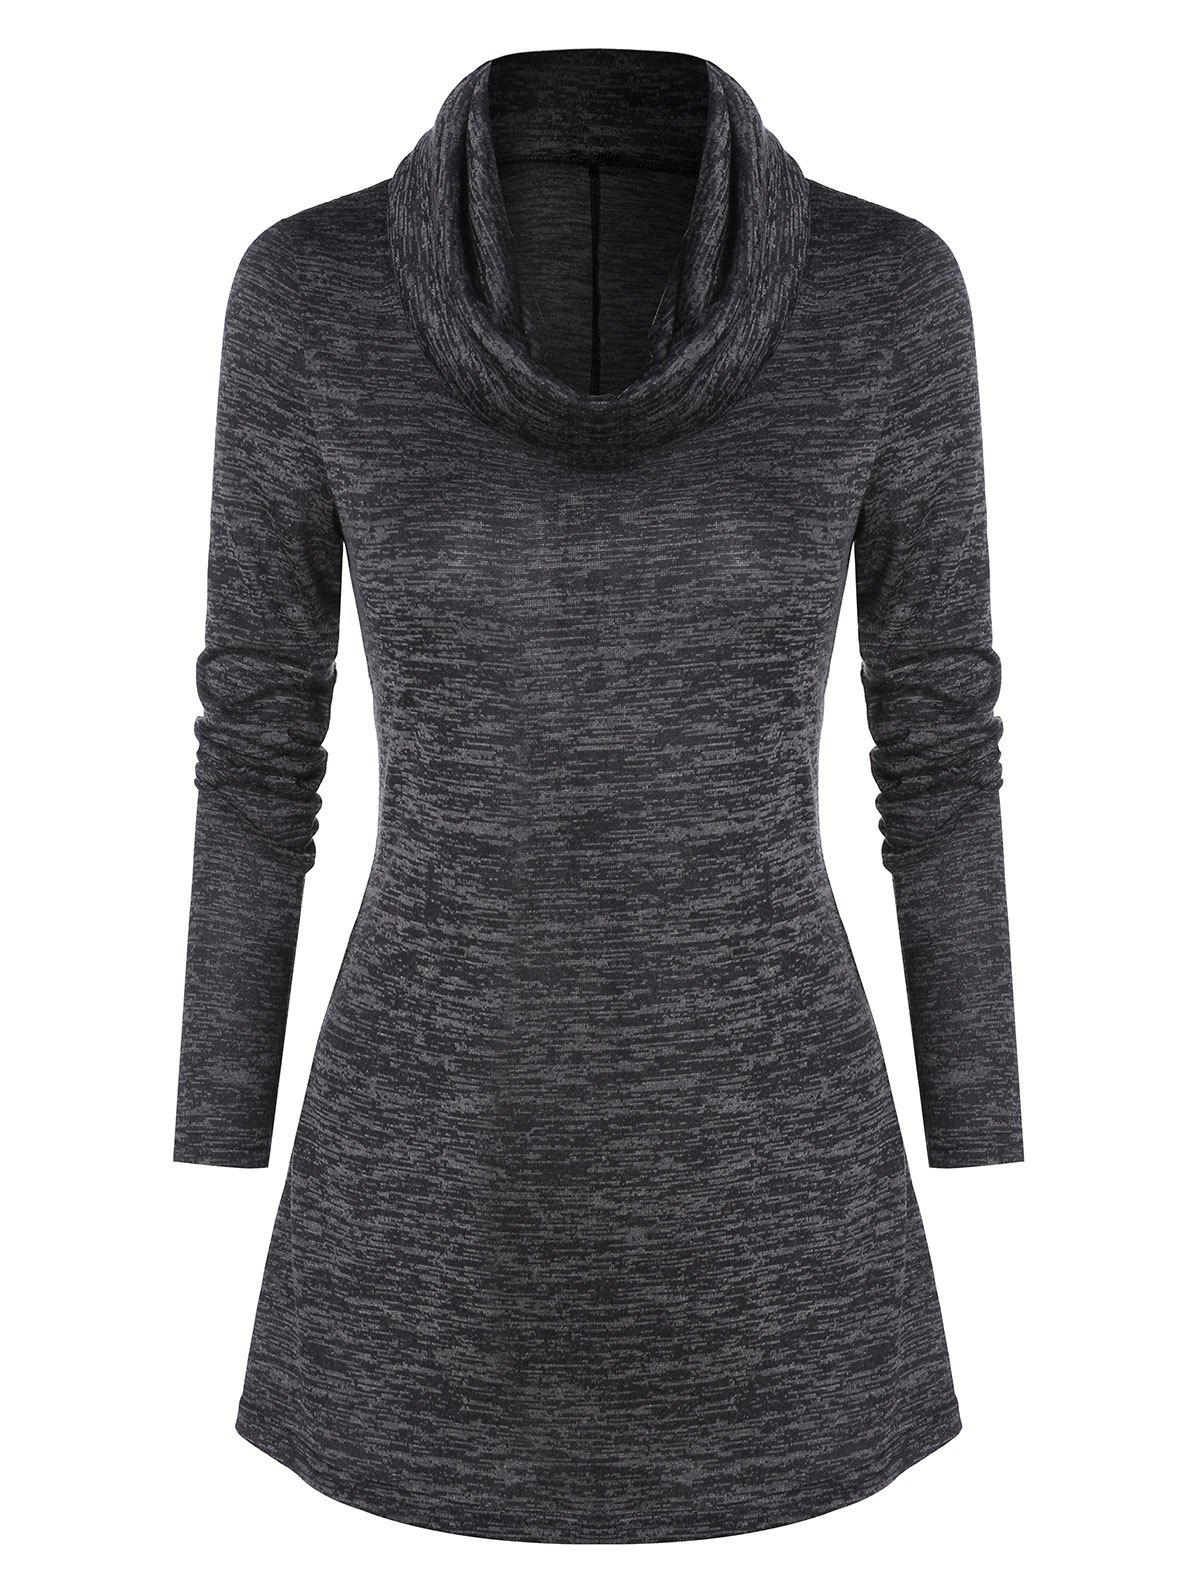 Cowl Neck Curved Hem Heathered T-shirt - CARBON GRAY M